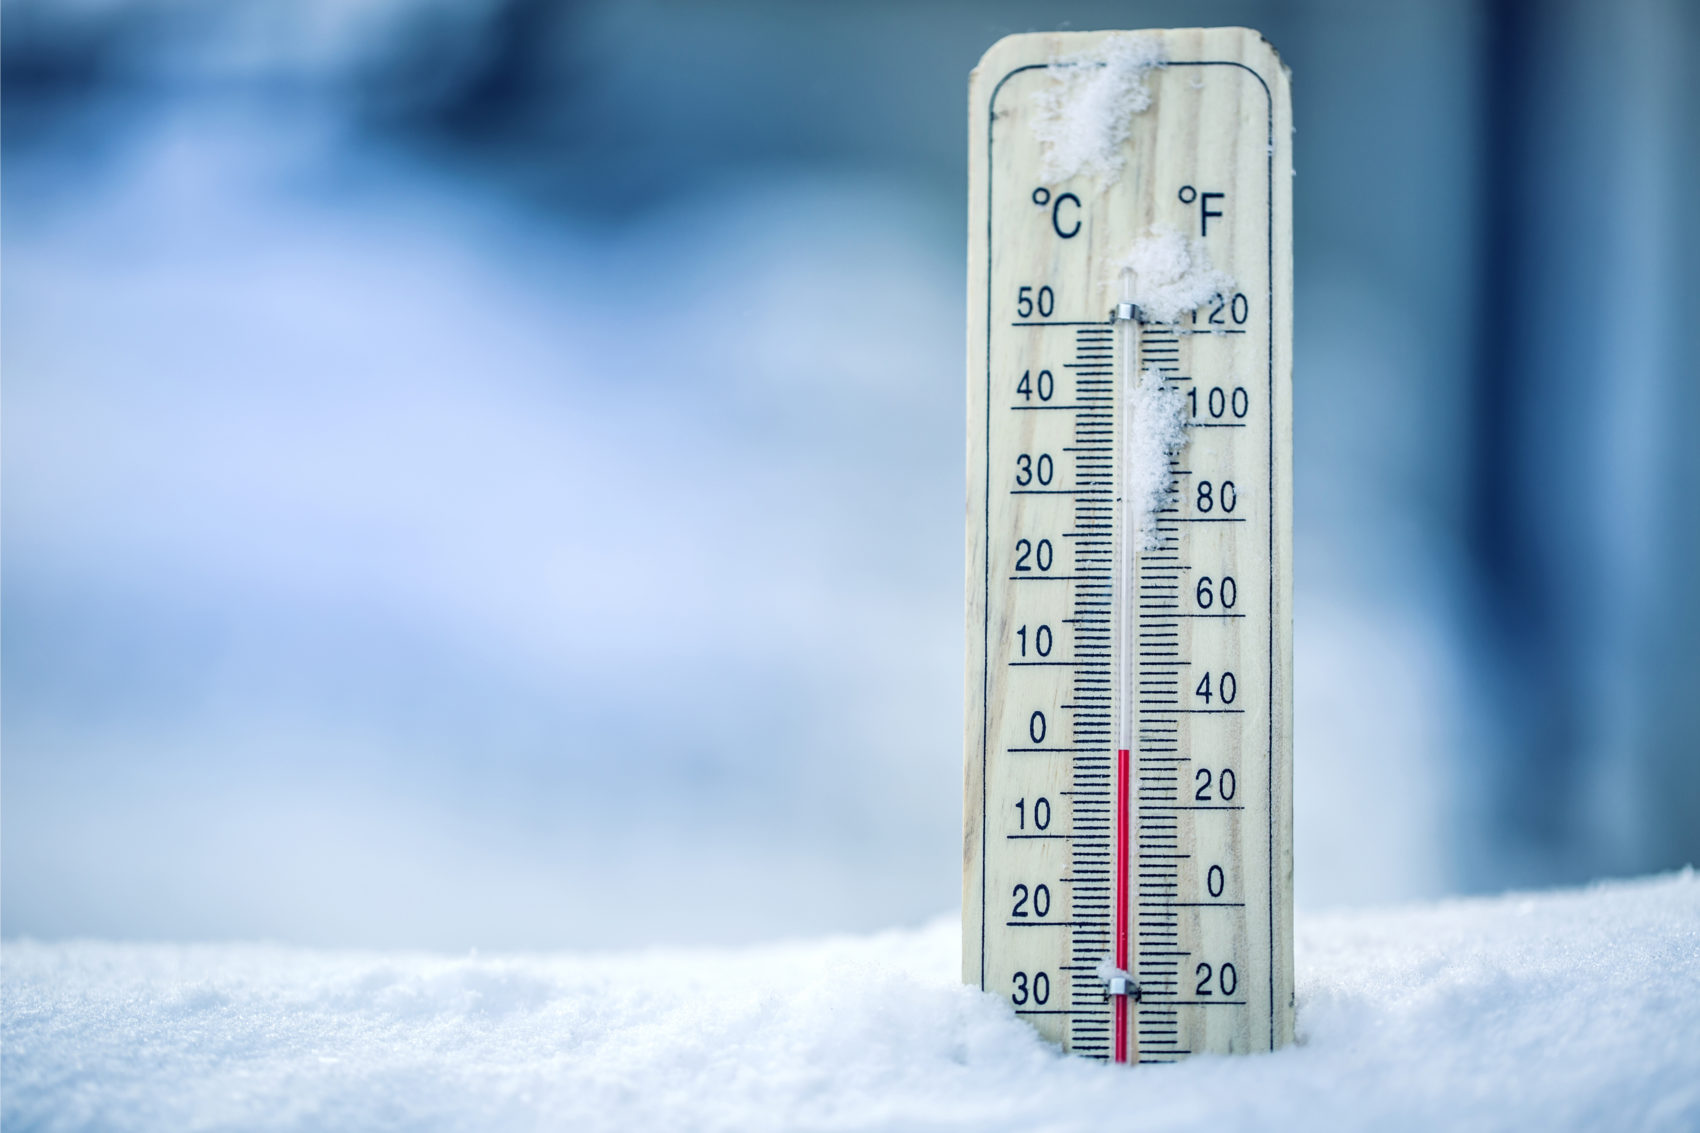 Temperatures are set to plummet in the UK this week (Photo: Shutterstock)